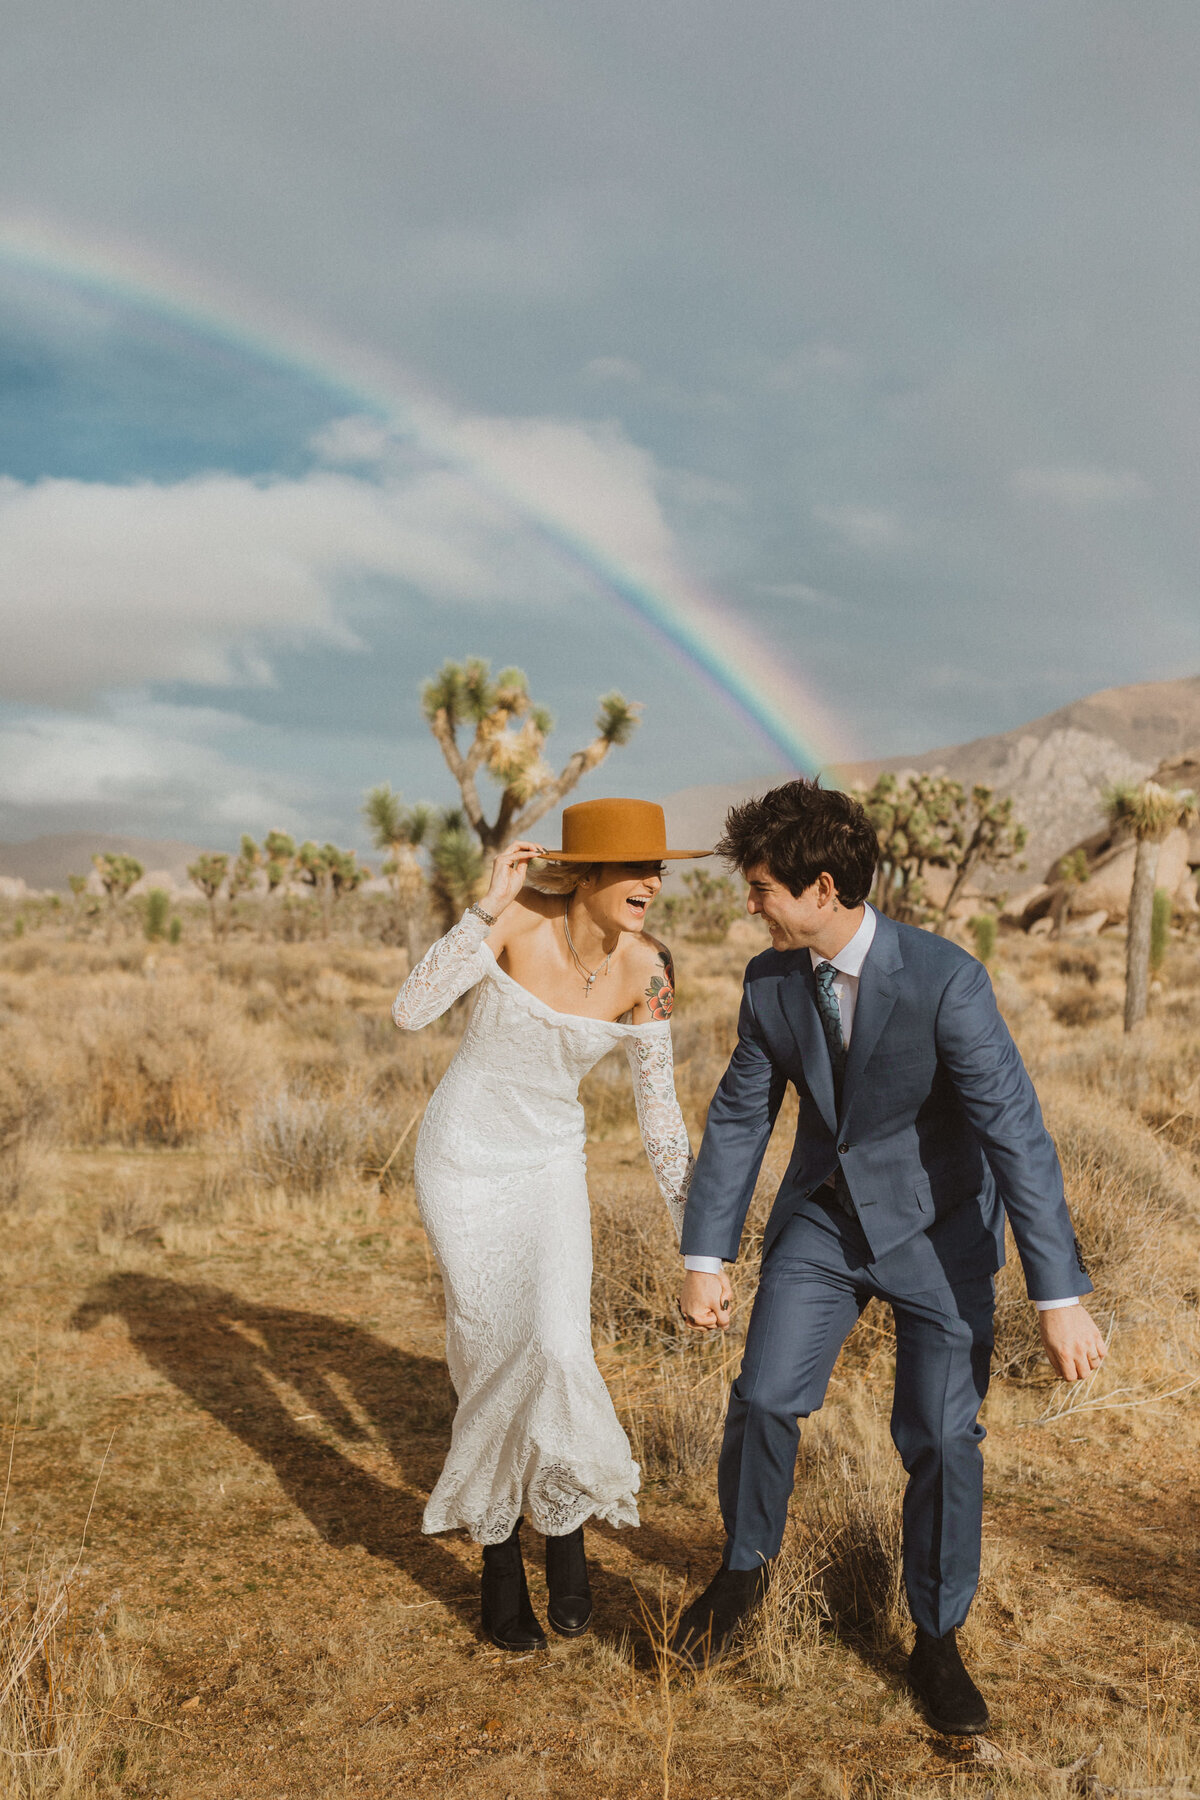 liv_hettinga_photography_joshua_tree_adventure_elopement-39